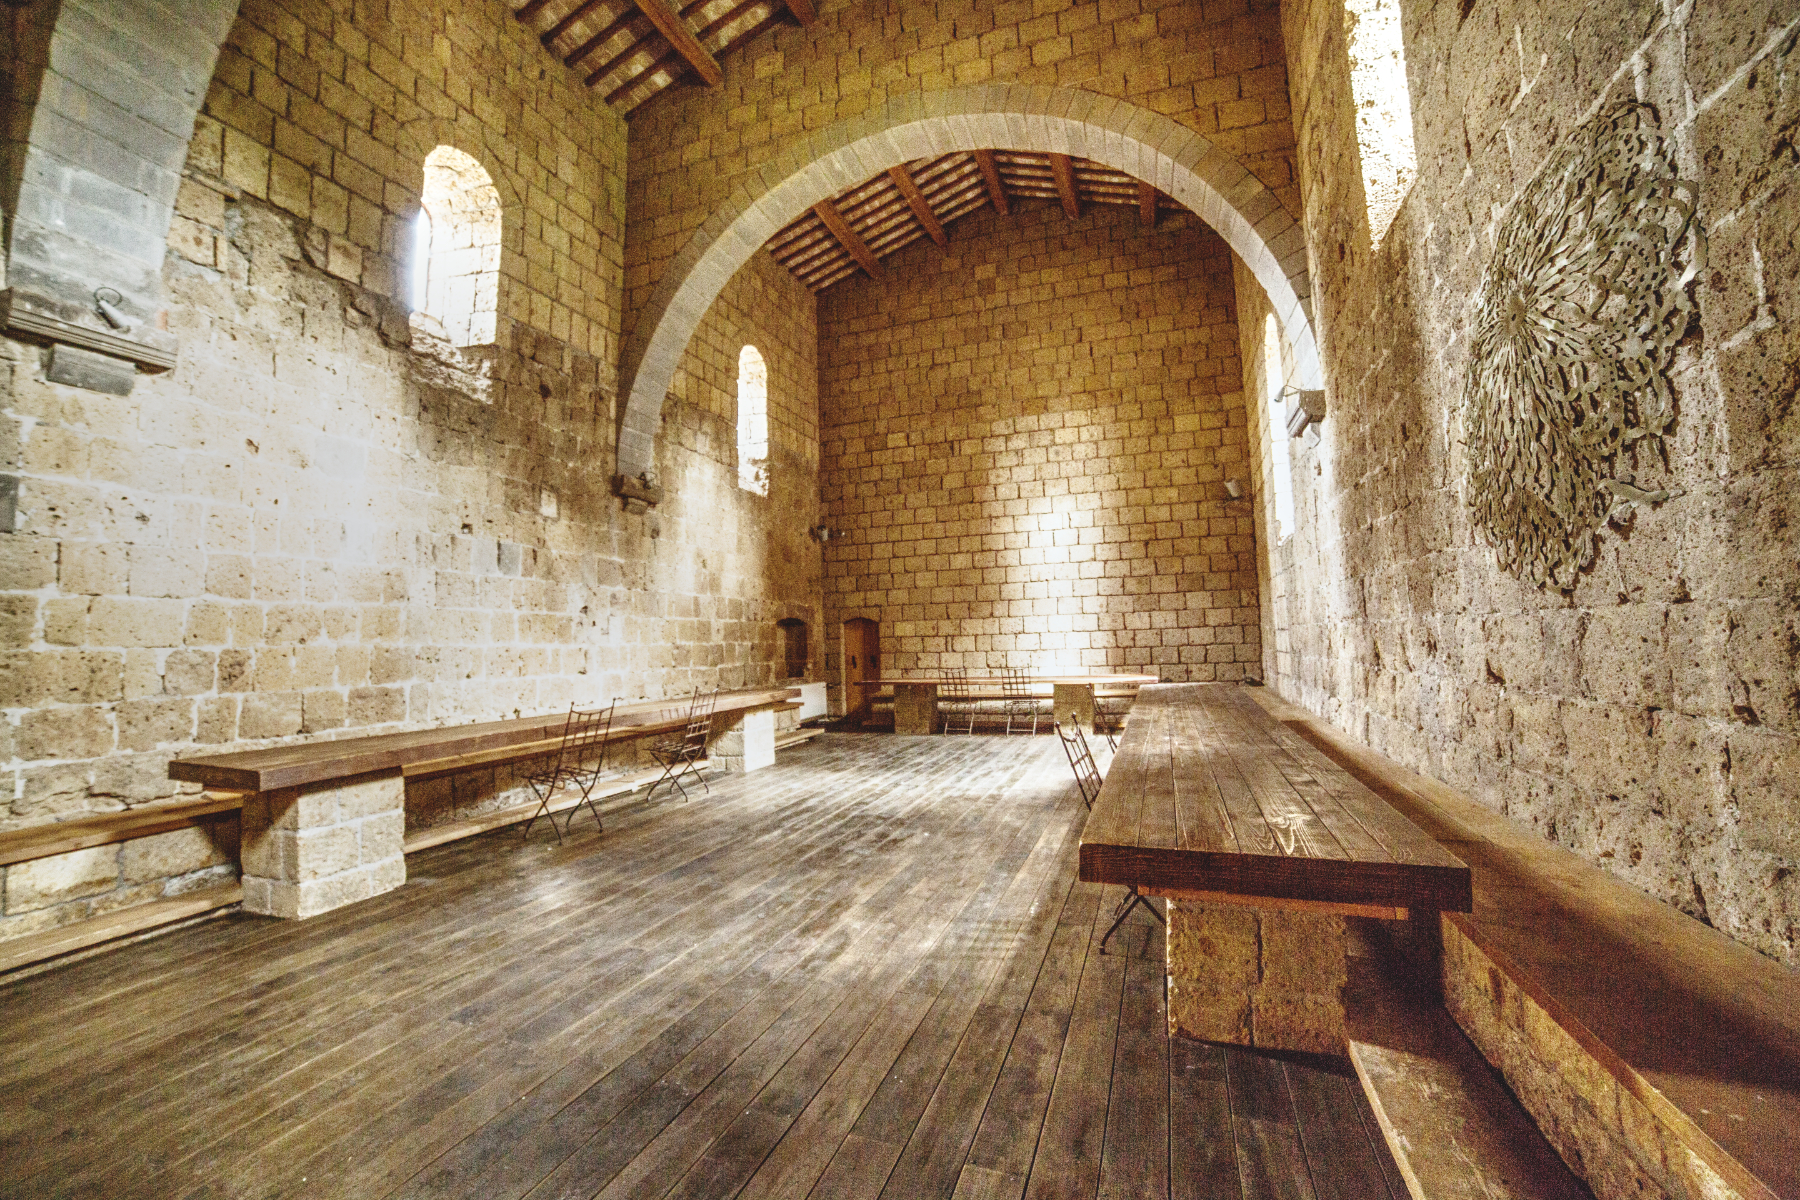 MONKS' REFECTORY